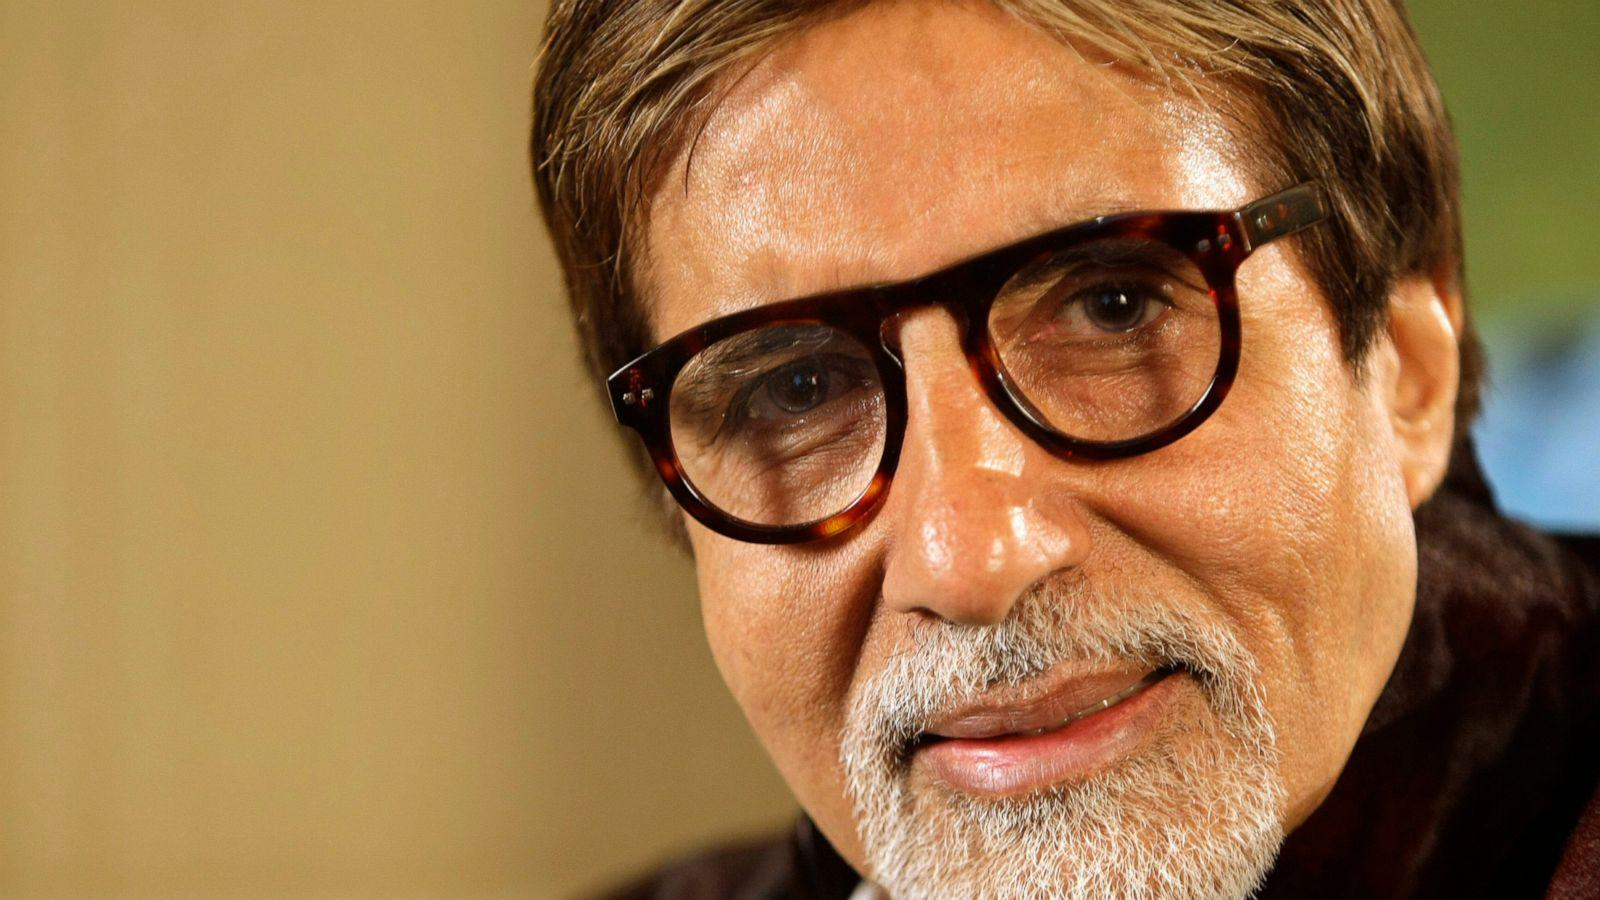 Amitabh Bachchan Shares An Inspirational Message